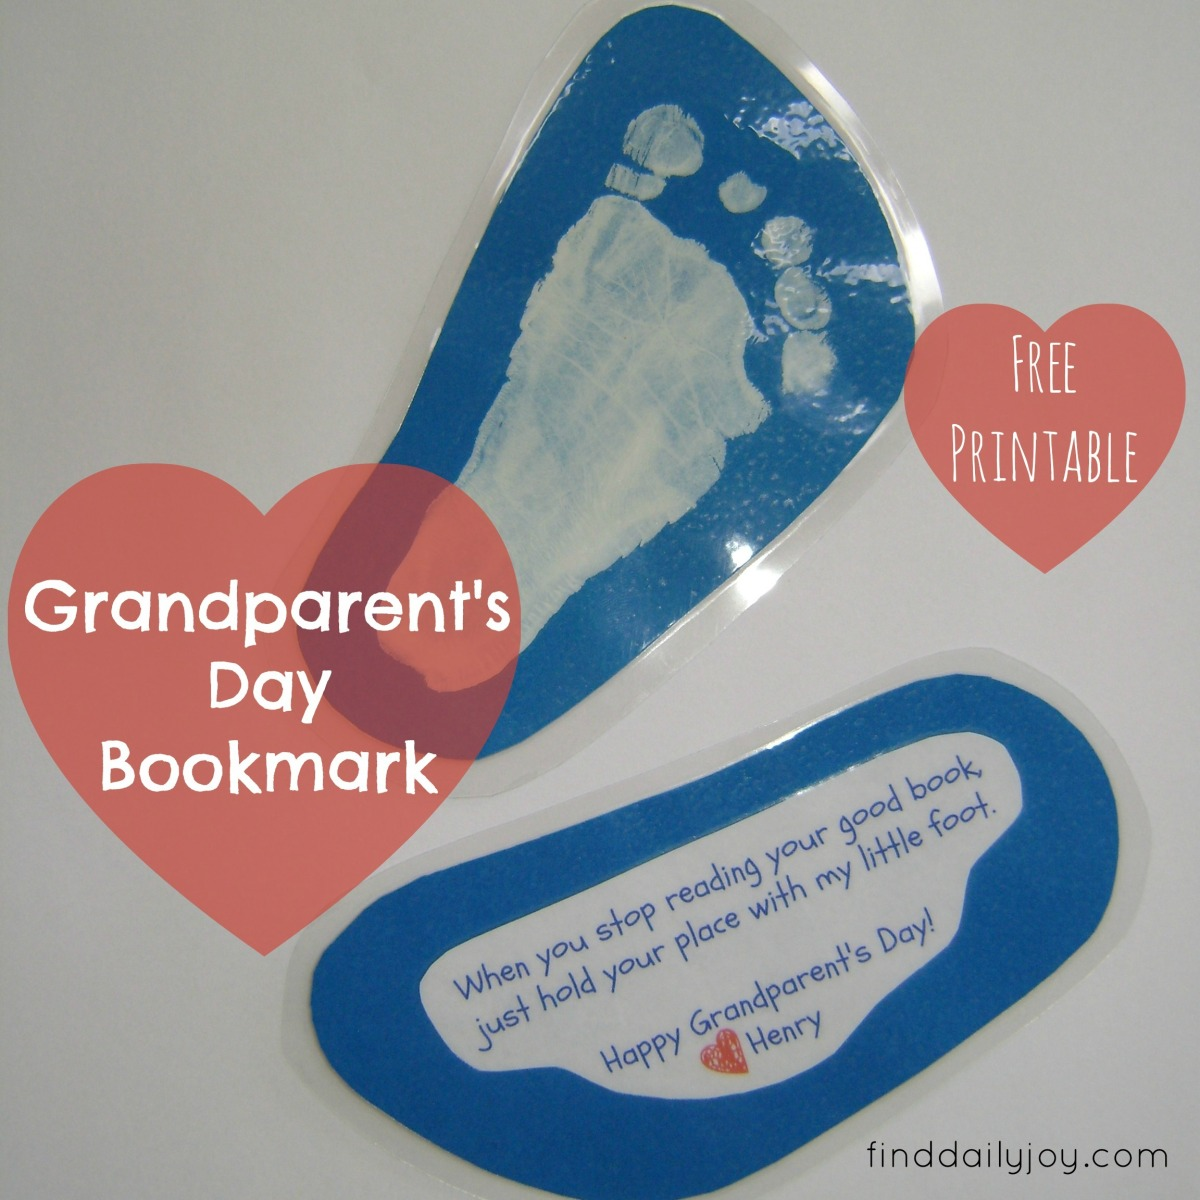 Grandparent's Day Bookmark {Free Printable}